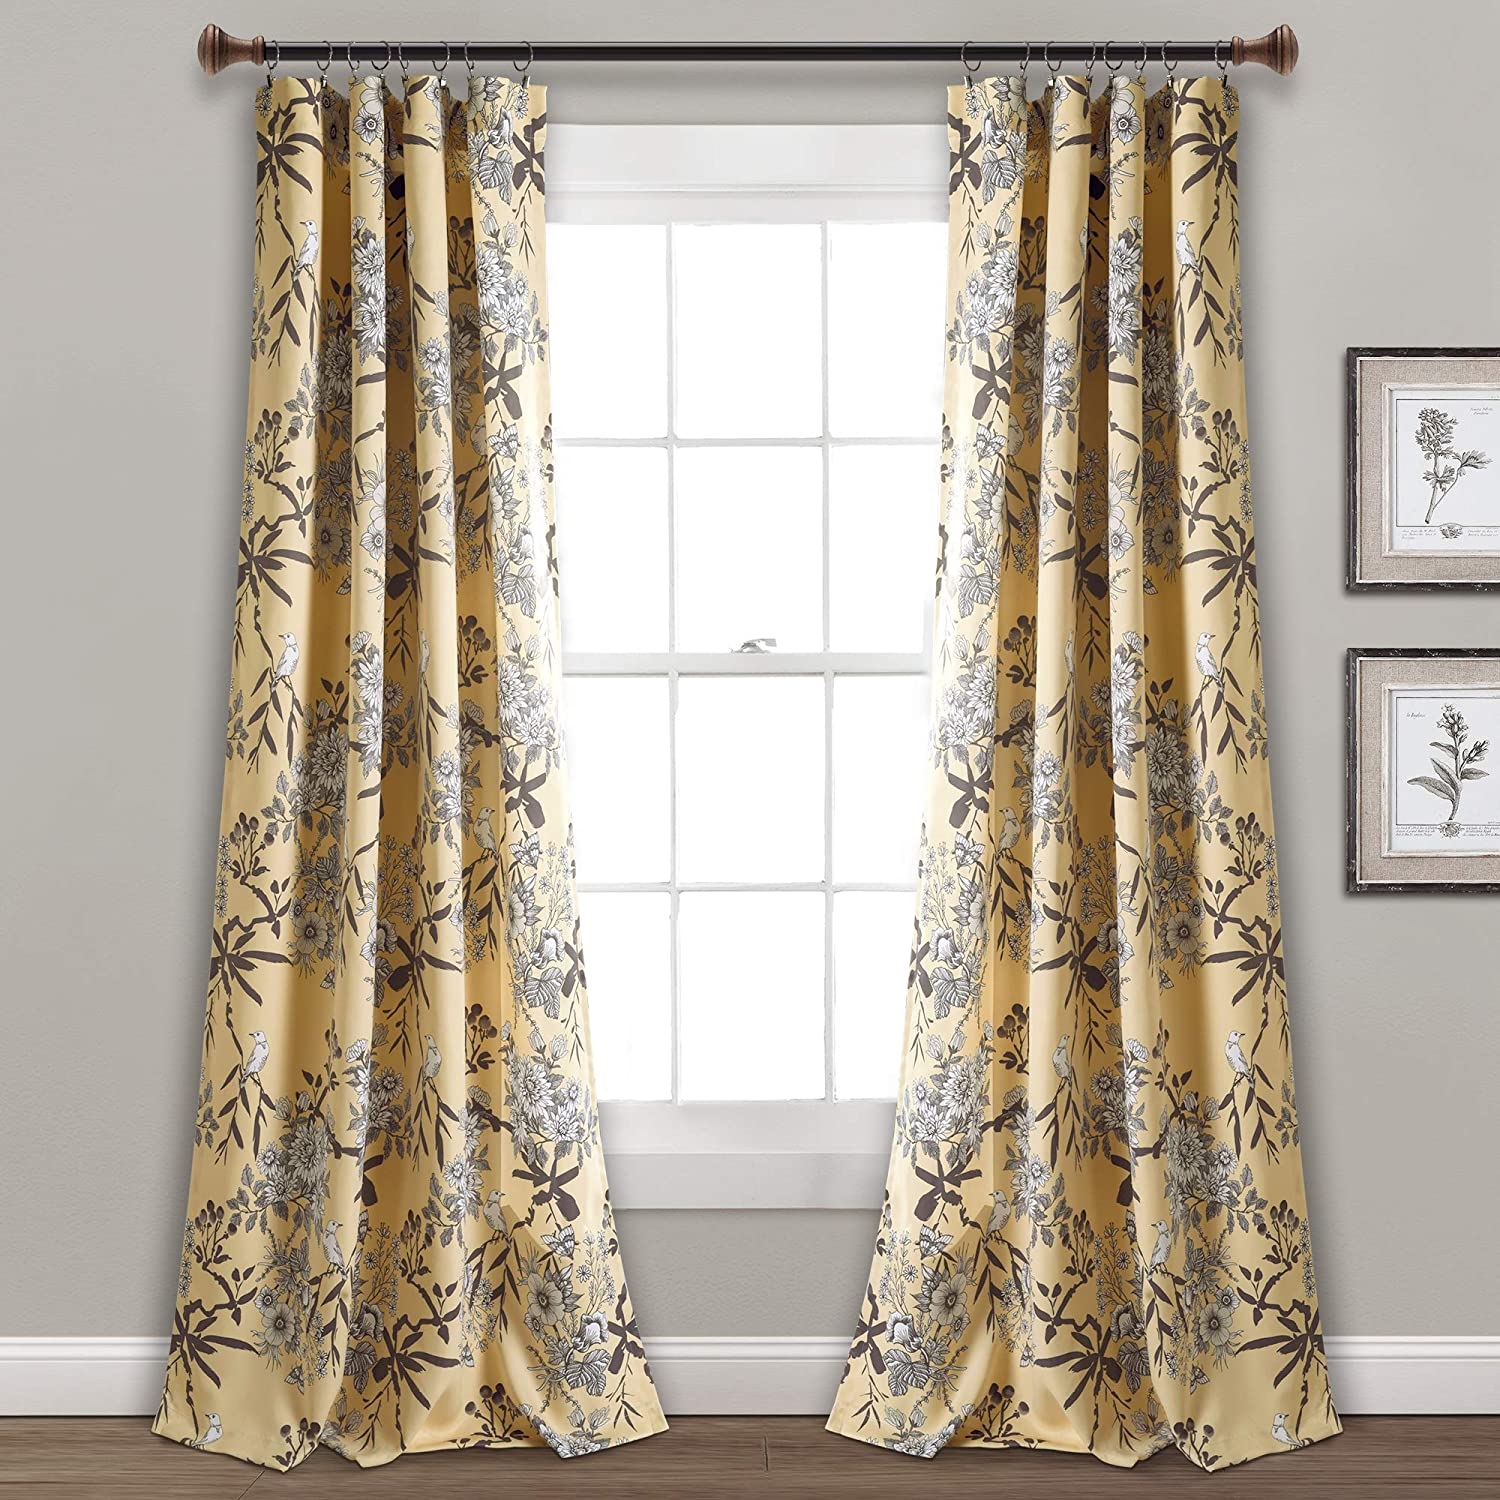 "Lush Decor, Yellow Botanical Garden Curtains Floral Bird Print Room Darkening Window Panel Drapes Set for Living, Dining, Bedroom (Pair), 95"" x 52"""